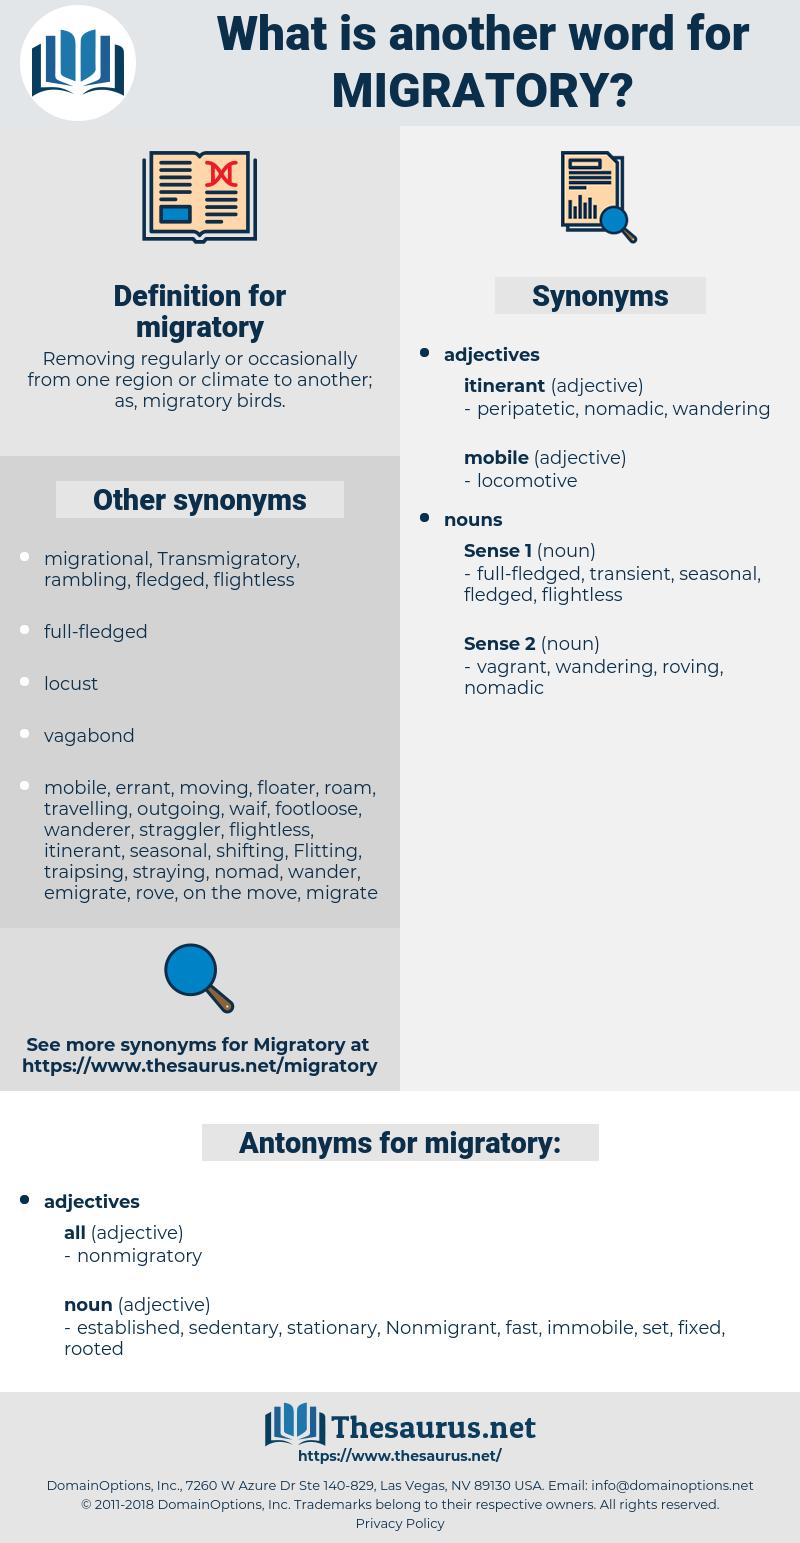 migratory, synonym migratory, another word for migratory, words like migratory, thesaurus migratory